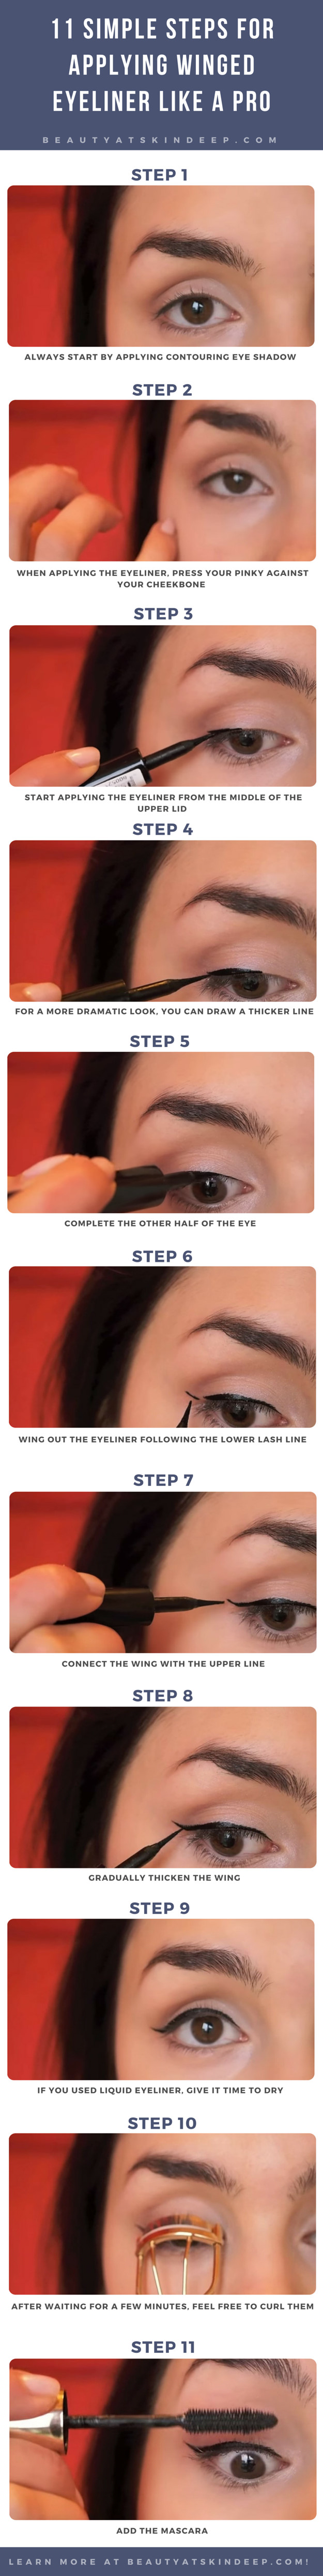 11 Simple Steps For Applying Winged Eyeliner Like A Pro - Step by step